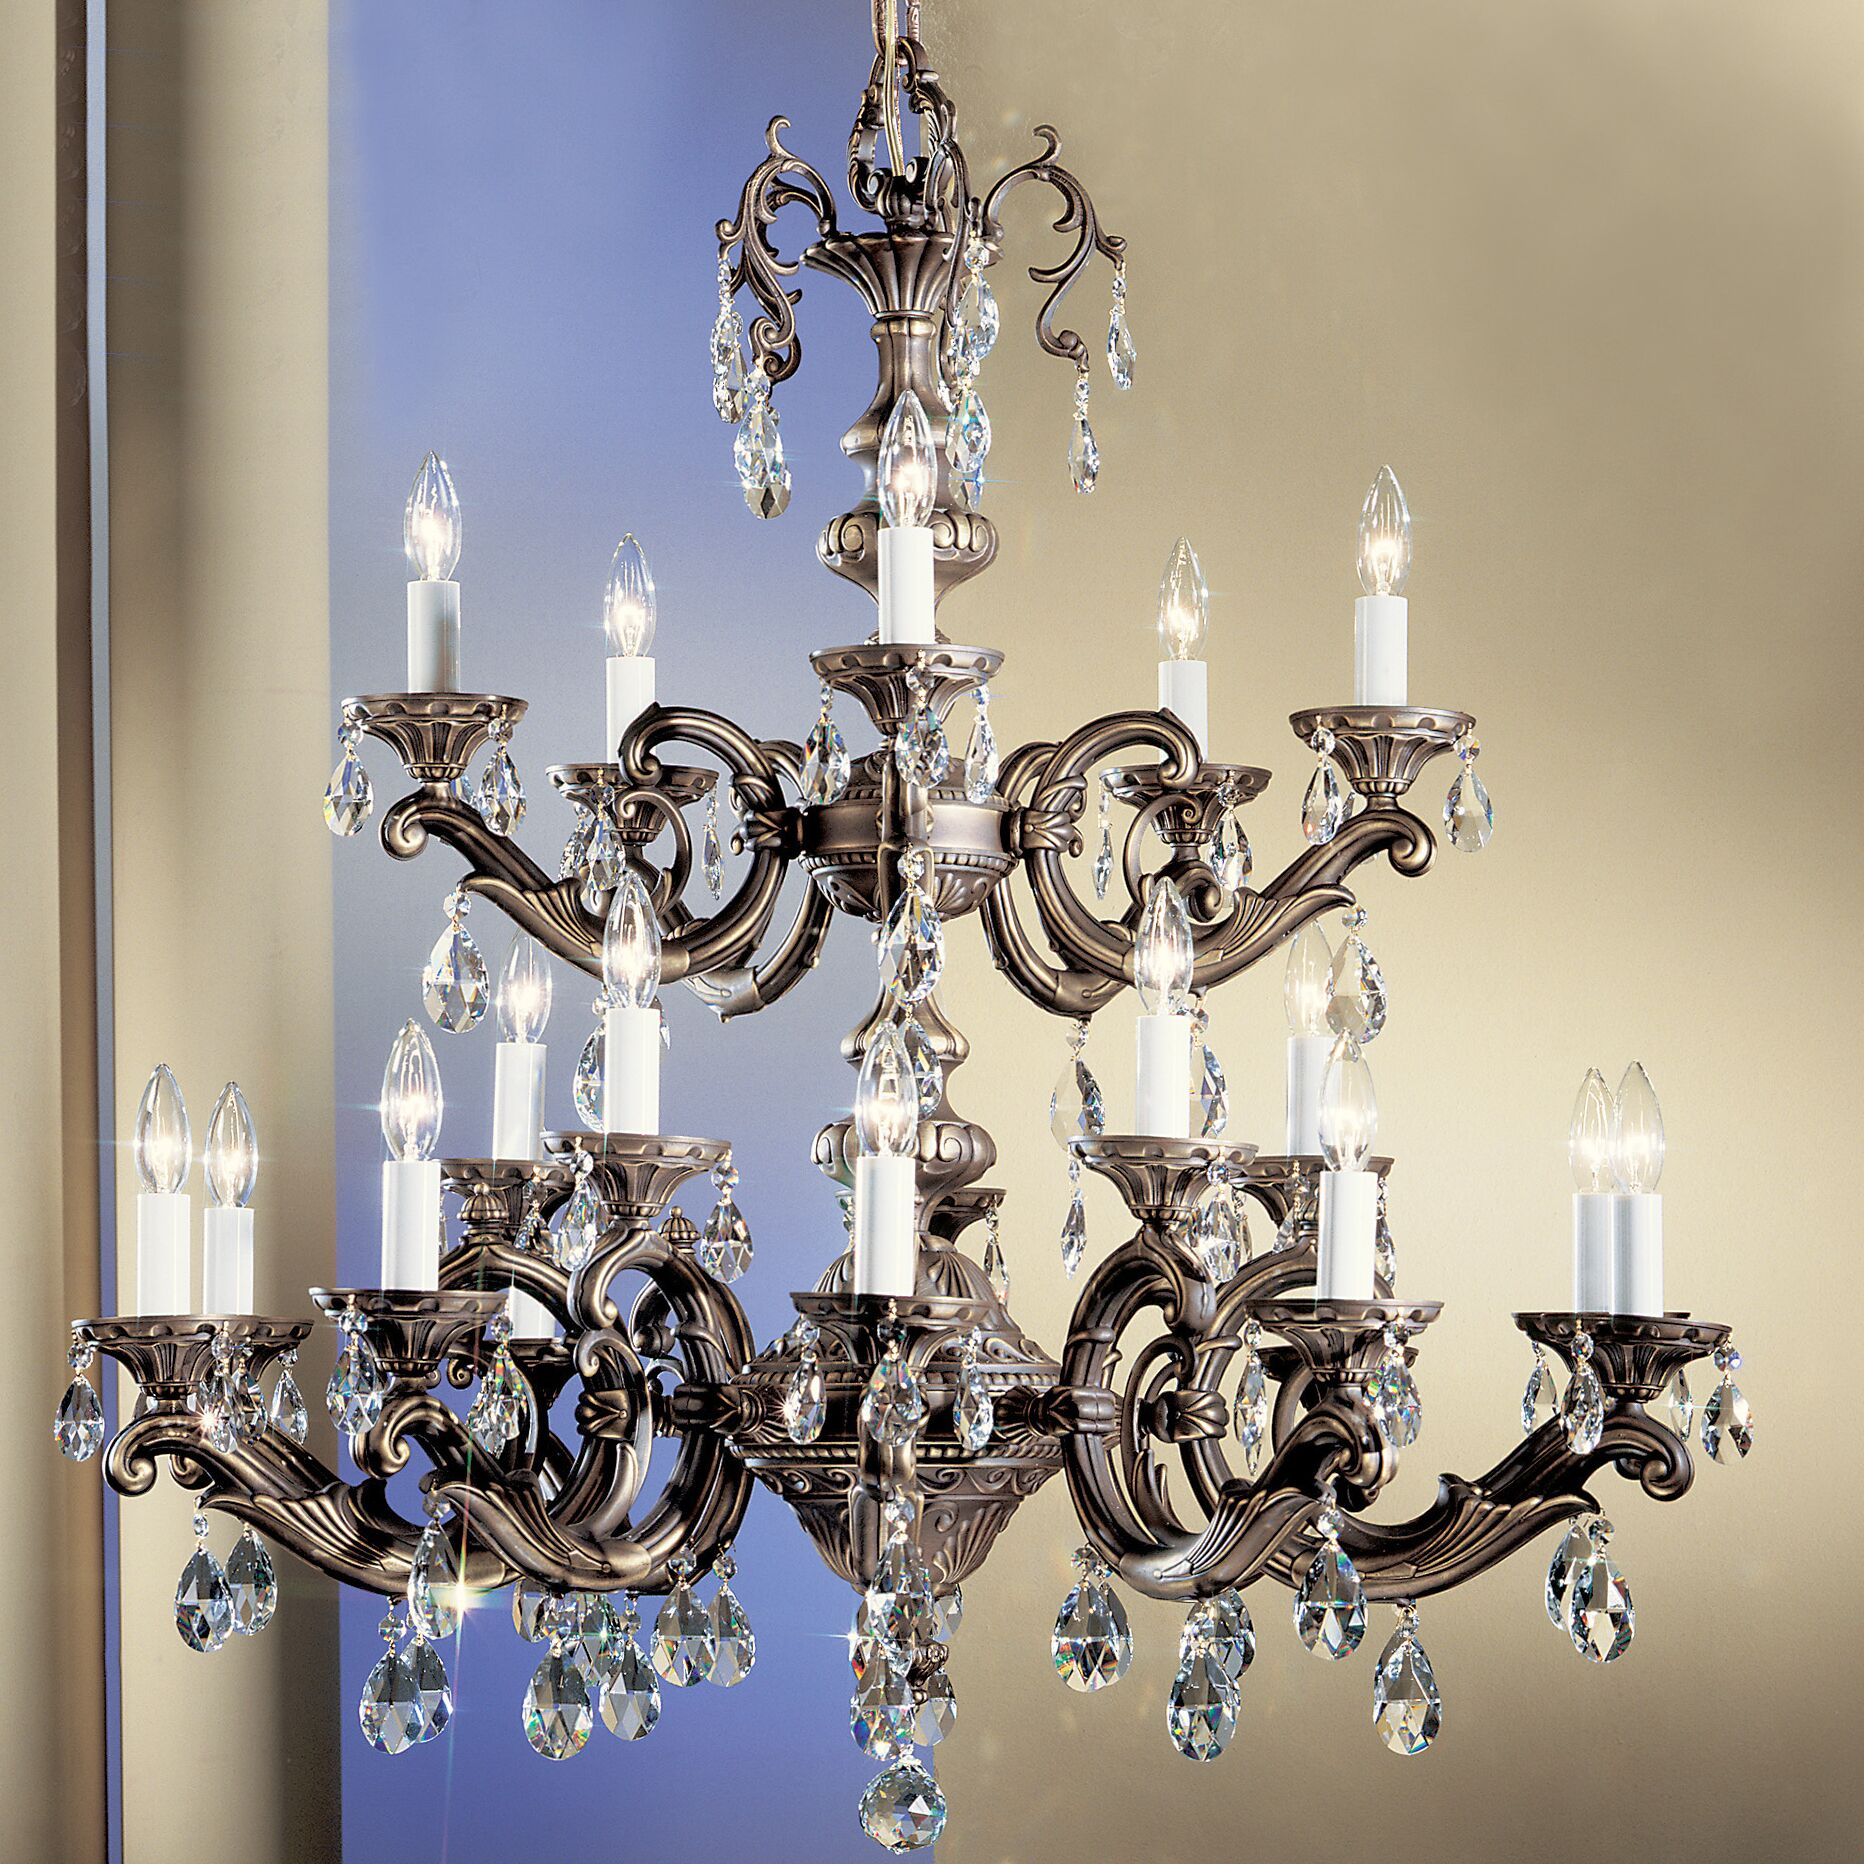 Princeton II 20-Light Candle Style Chandelier Finish: Roman Bronze, Crystal Type: Crystalique